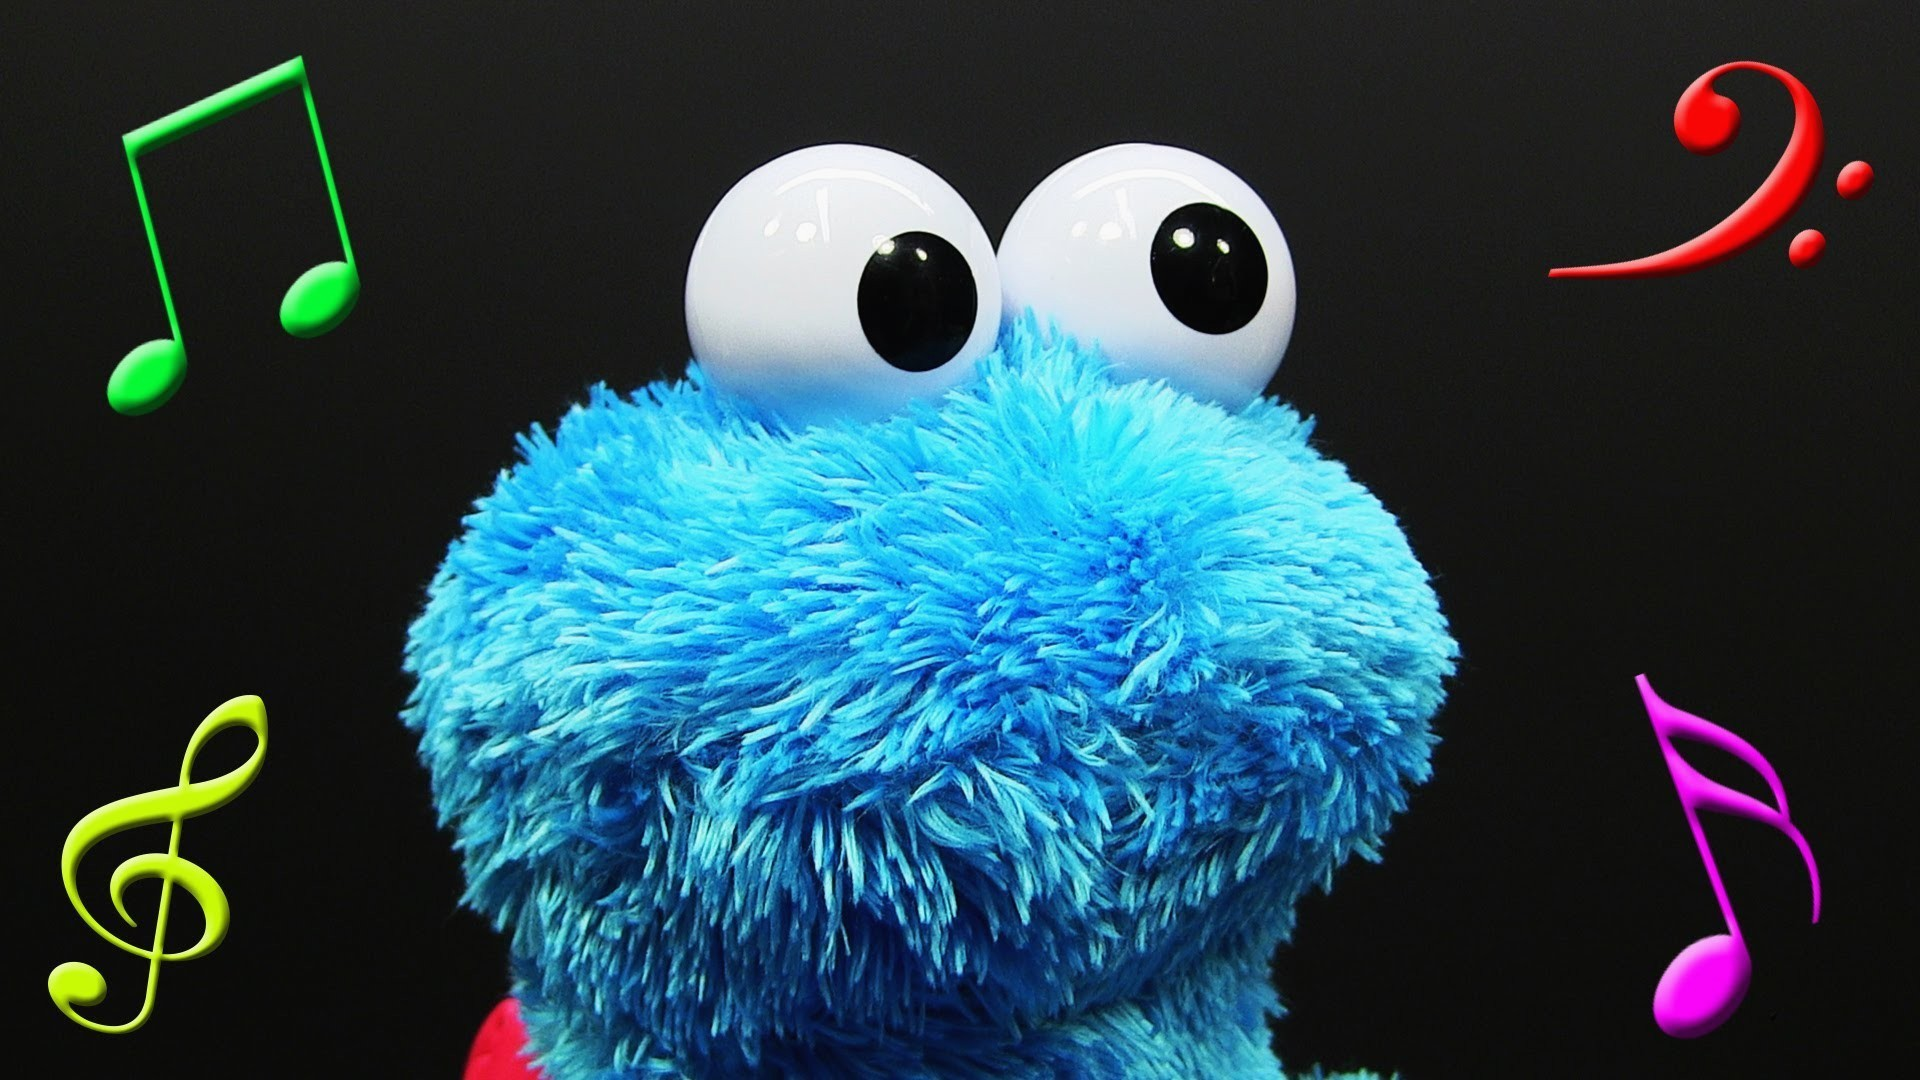 2560x1440 Free Images Cookie Monster Hd Wallpapers Full Windows 10 Backgrounds Amazing 4k Download